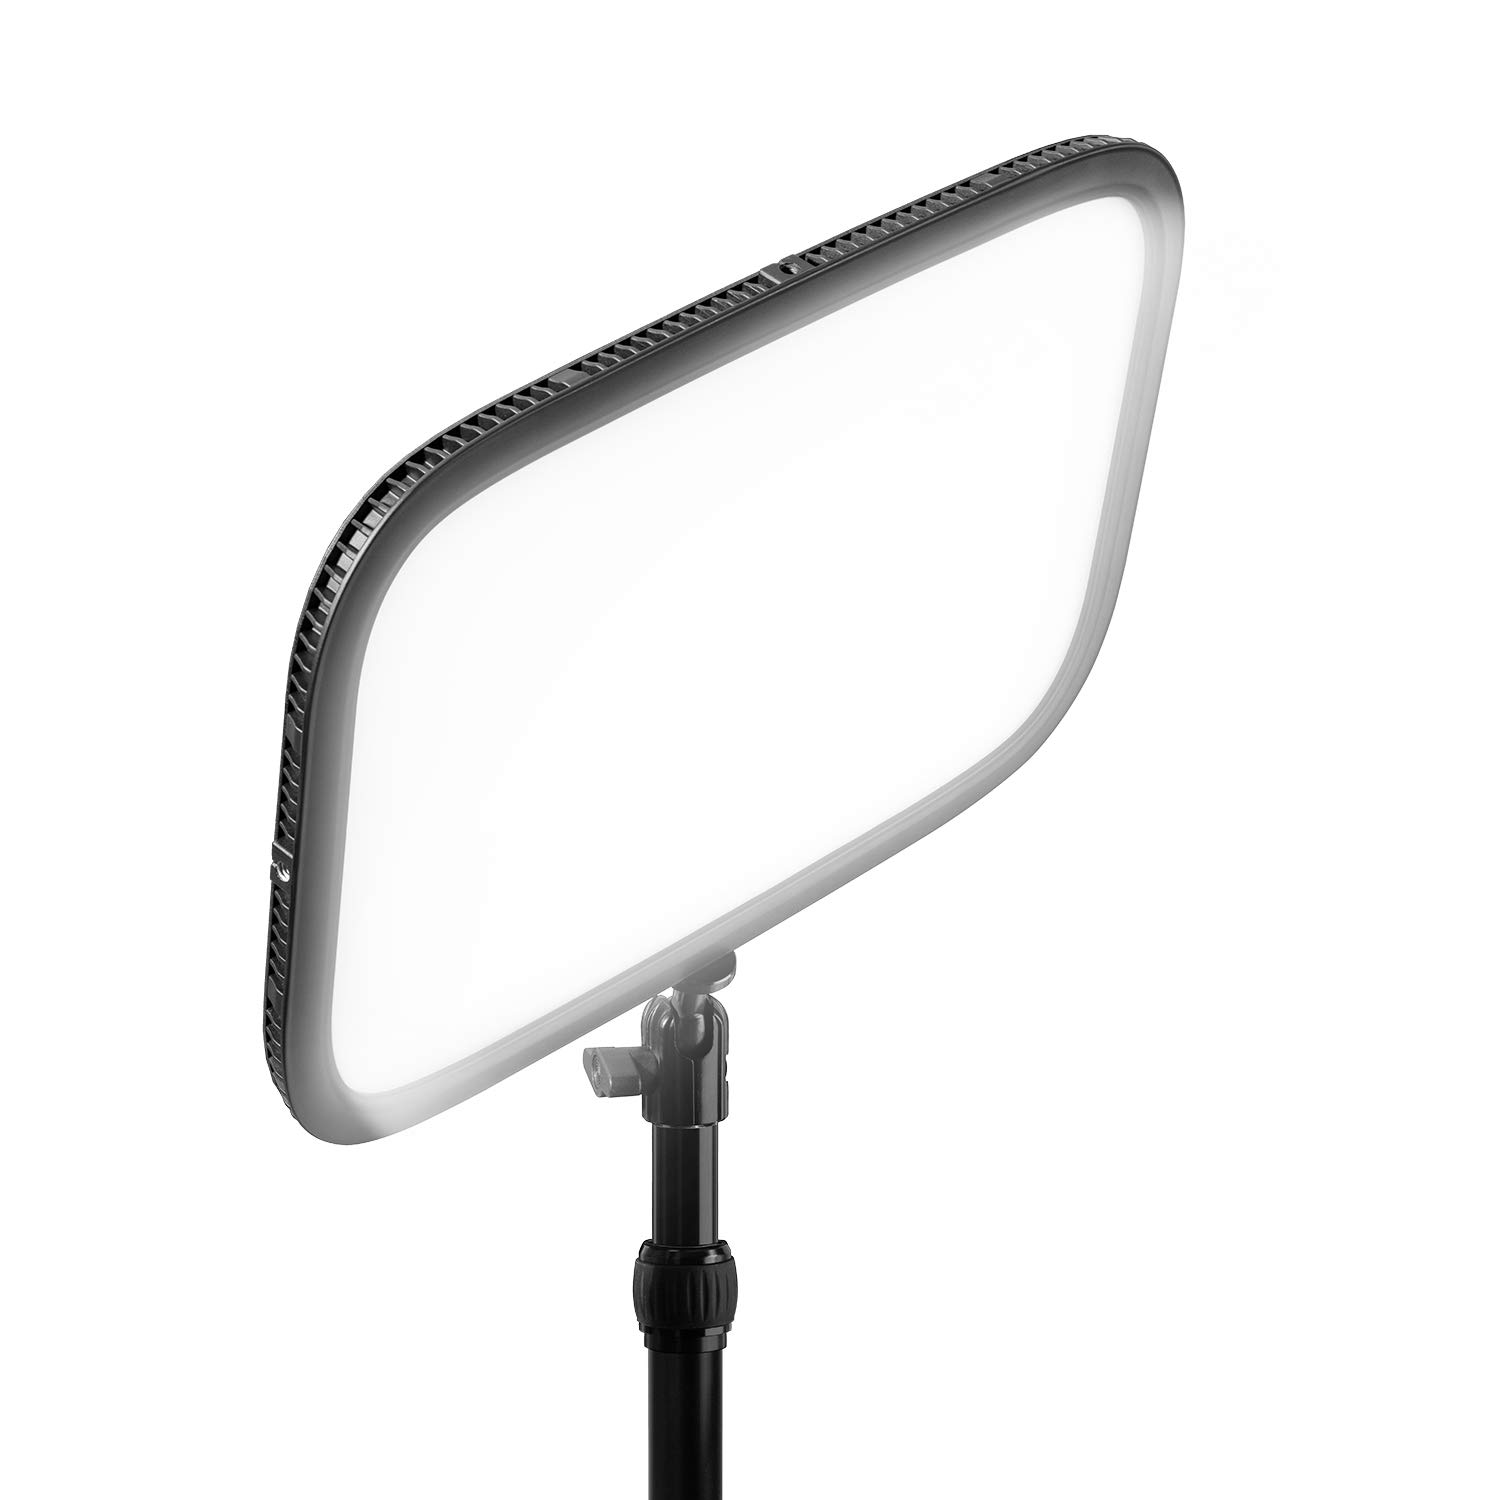 Elgato Key Light - Professional Studio LED Panel with 2500 Lumens, Color Adjustable, App-Enabled - PC and Mac